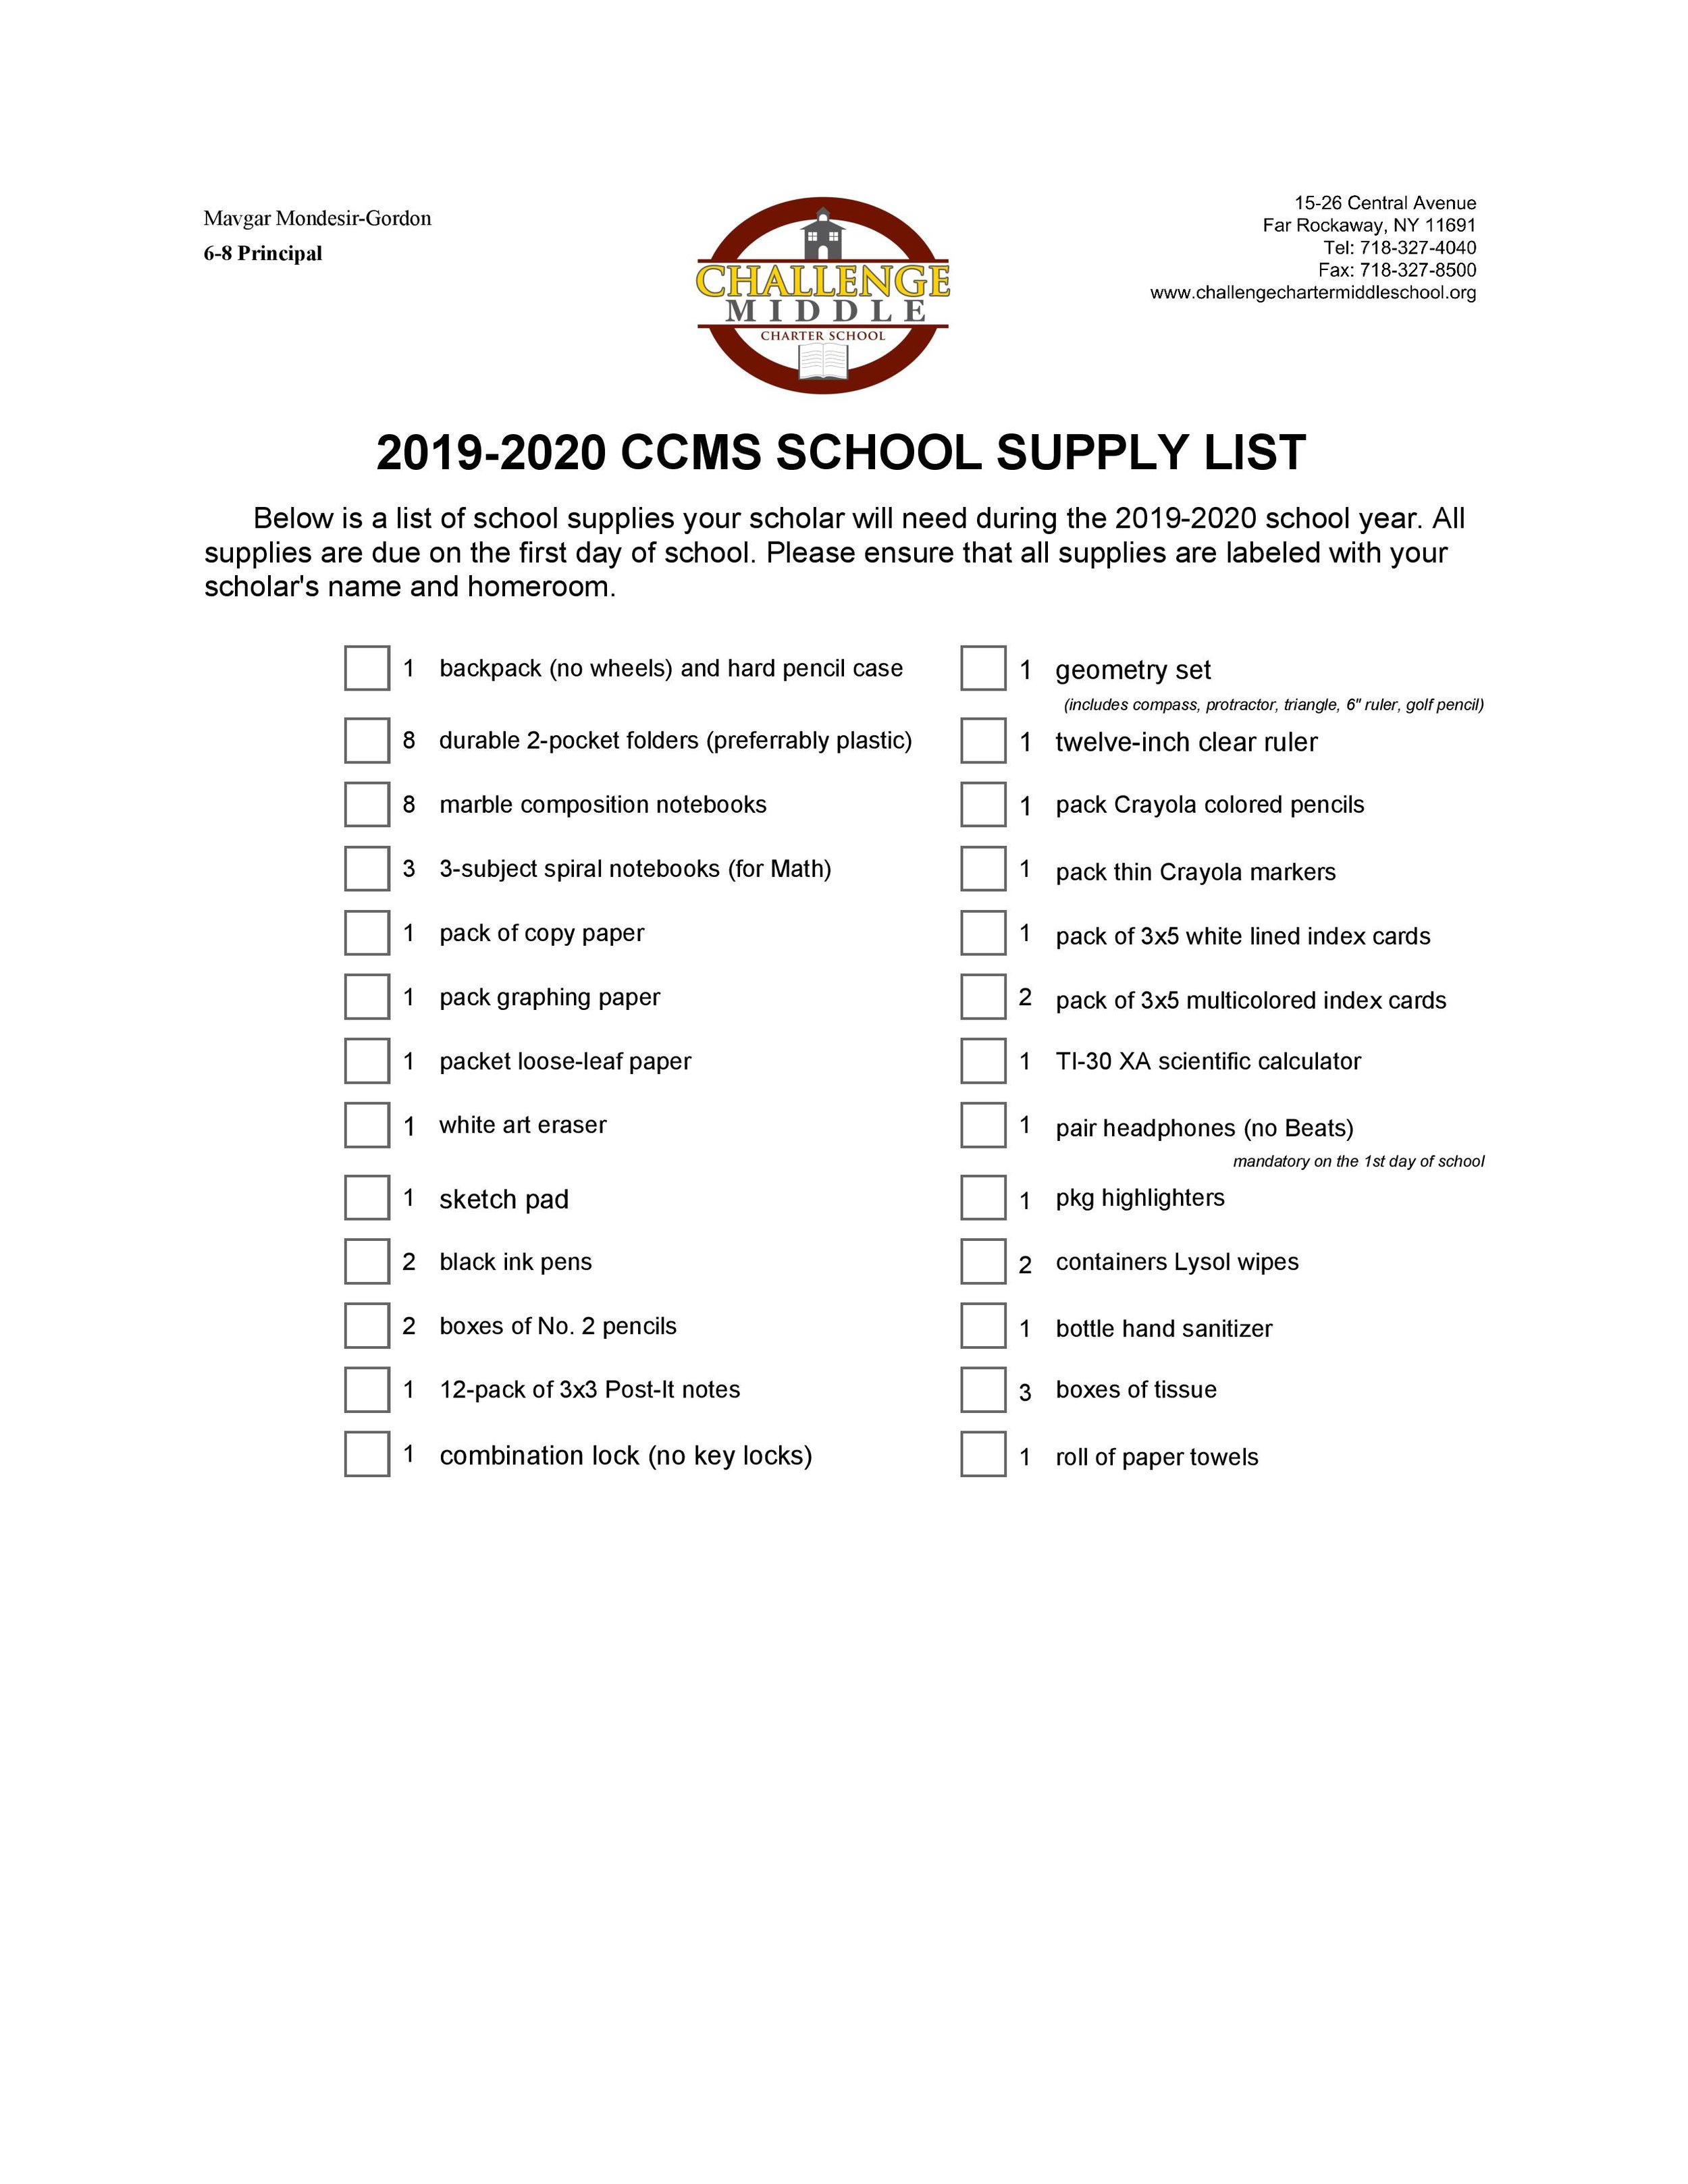 2019-20 School Supply List